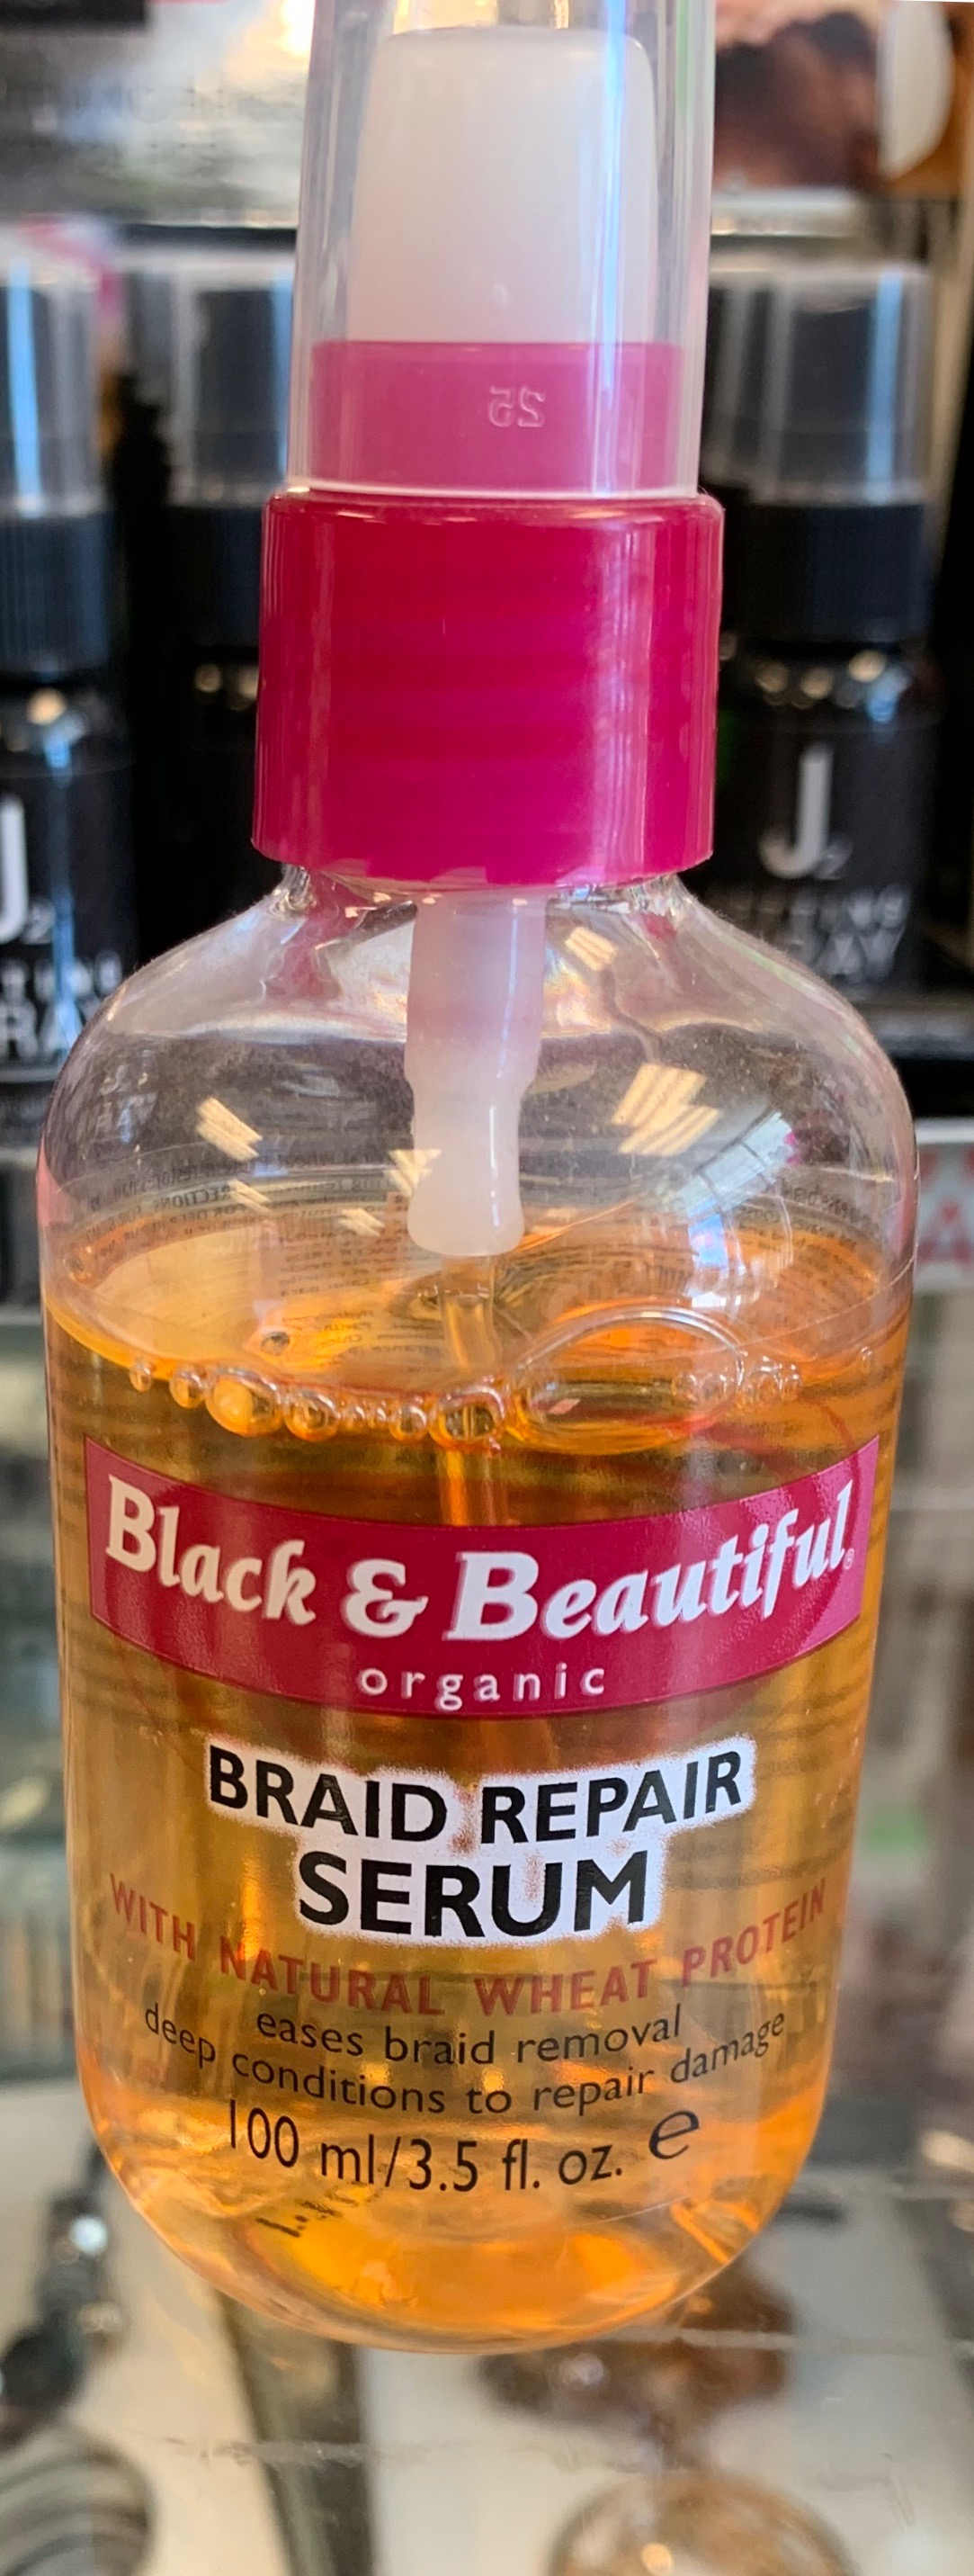 Black & Beautiful Braid Repair Serum